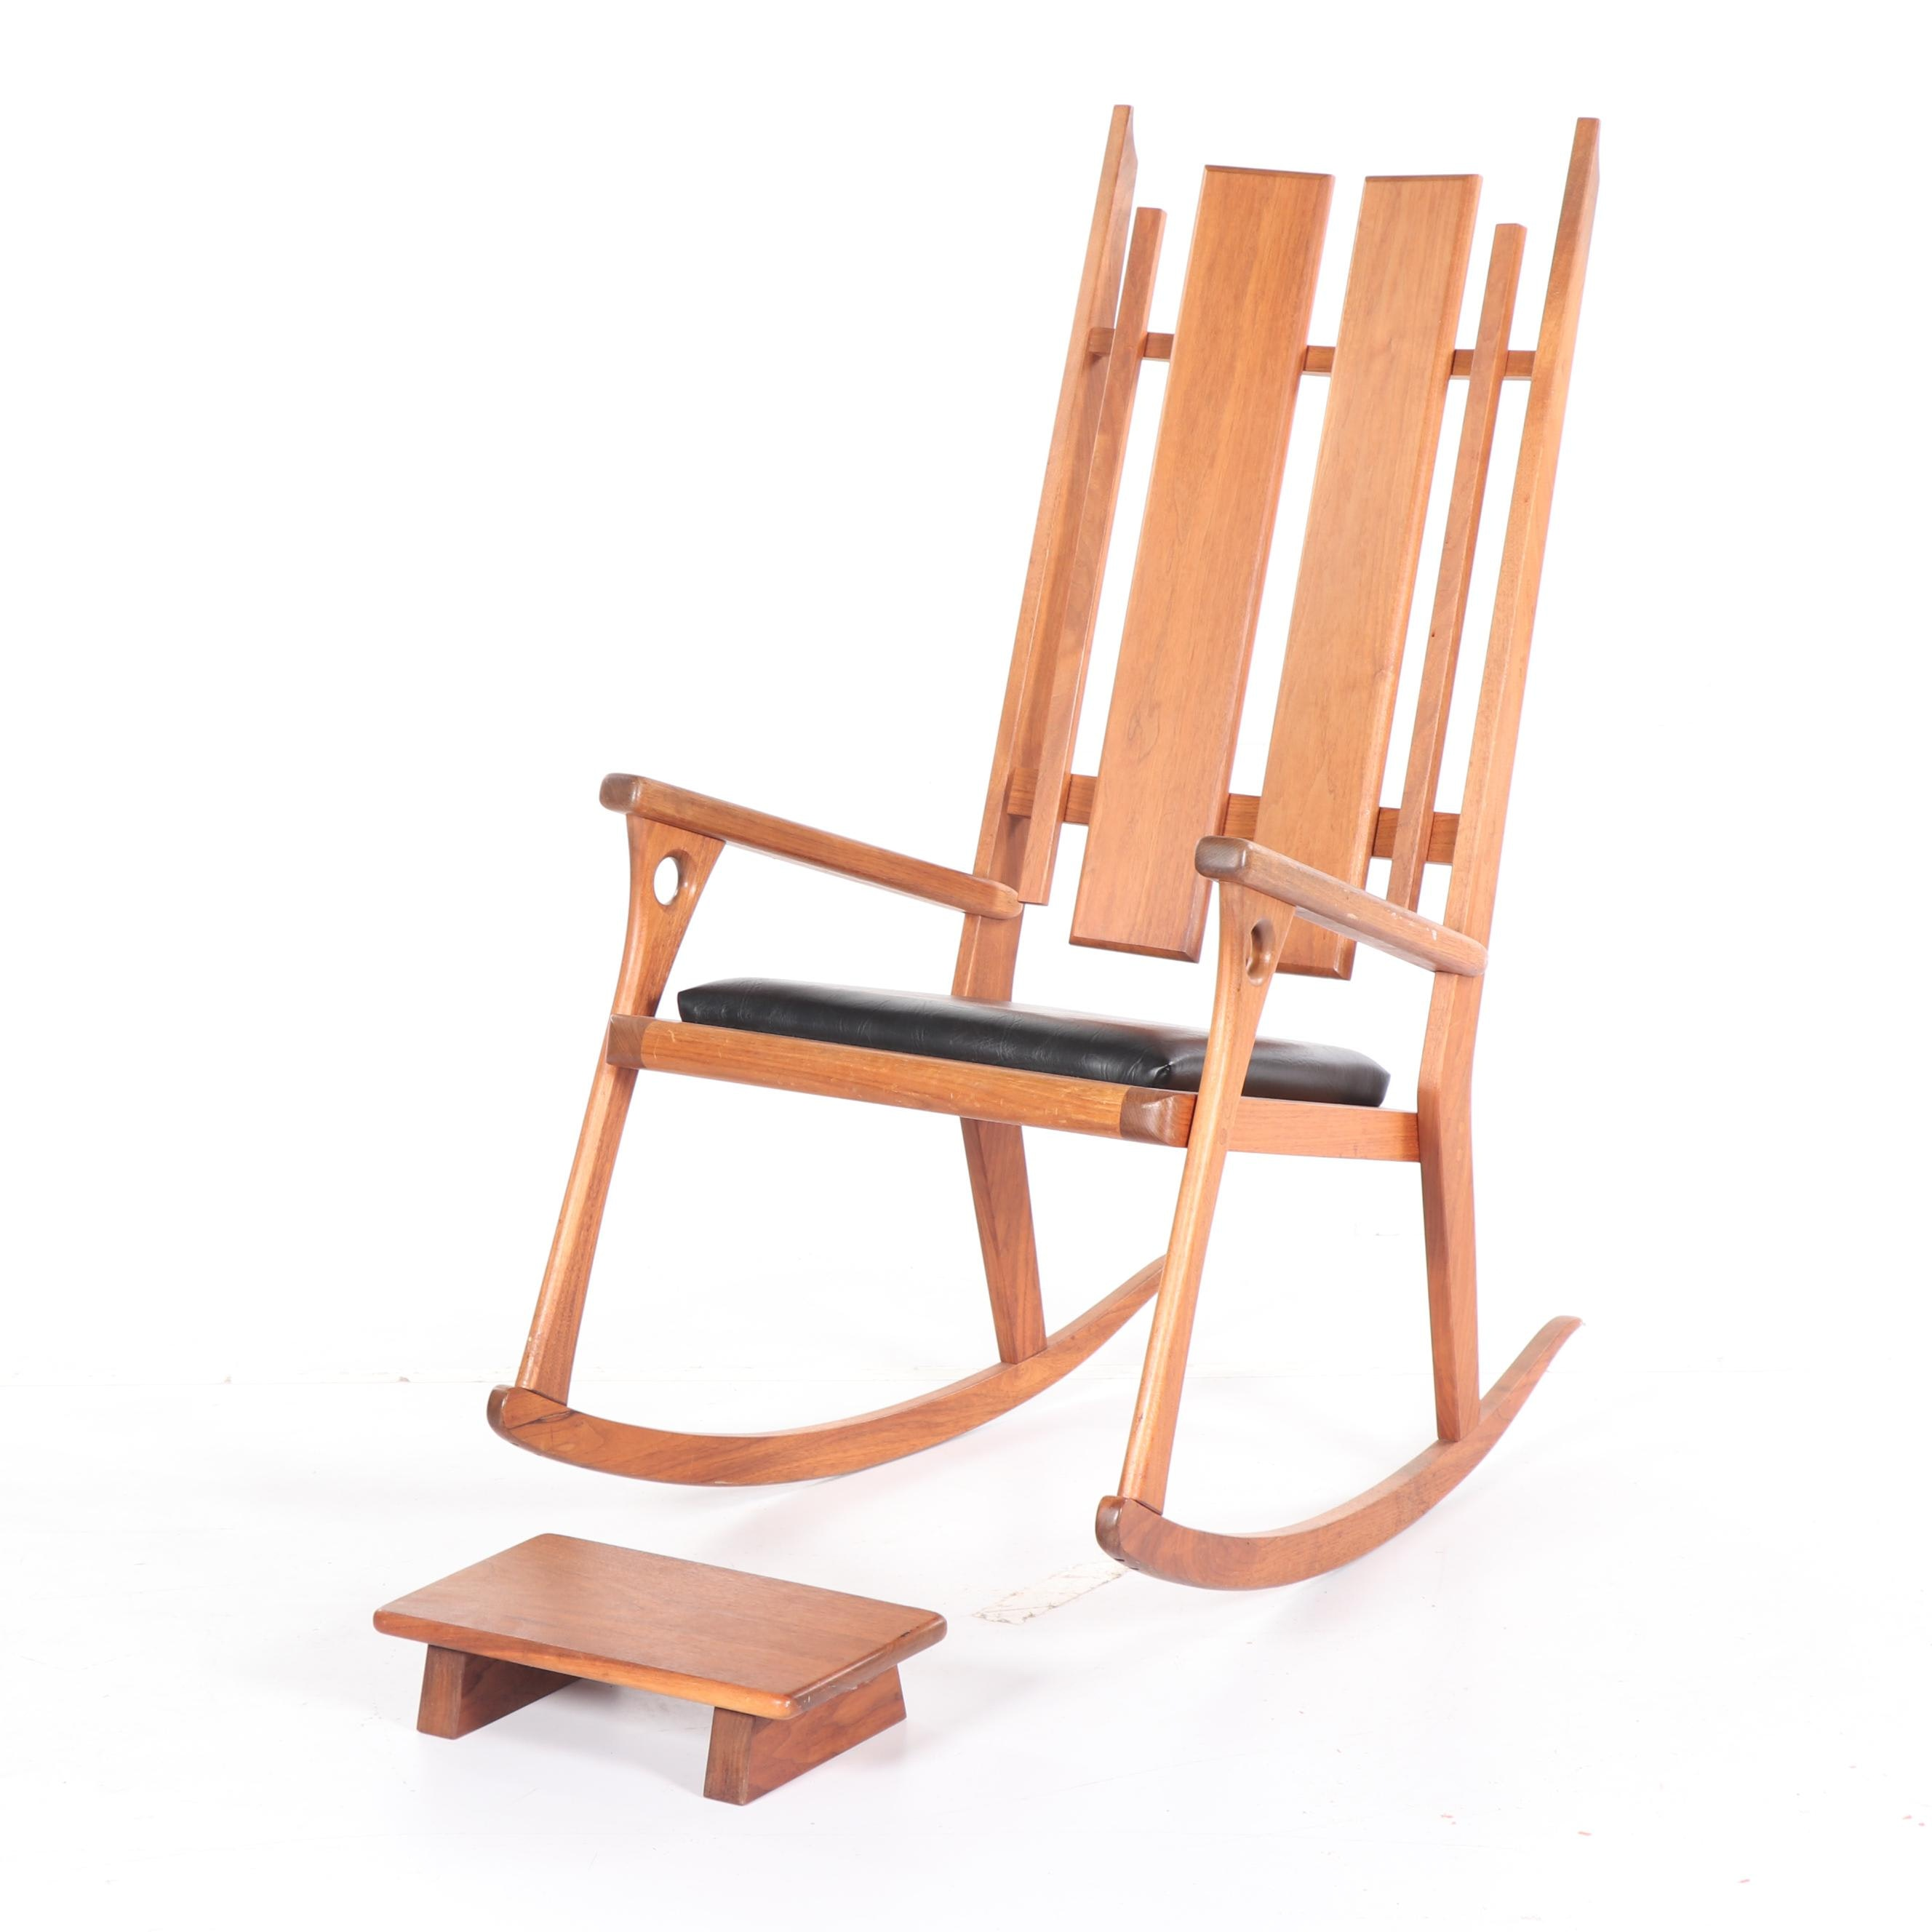 Contemporary Teak Rocking Chair and Footstool by Jeff Easley